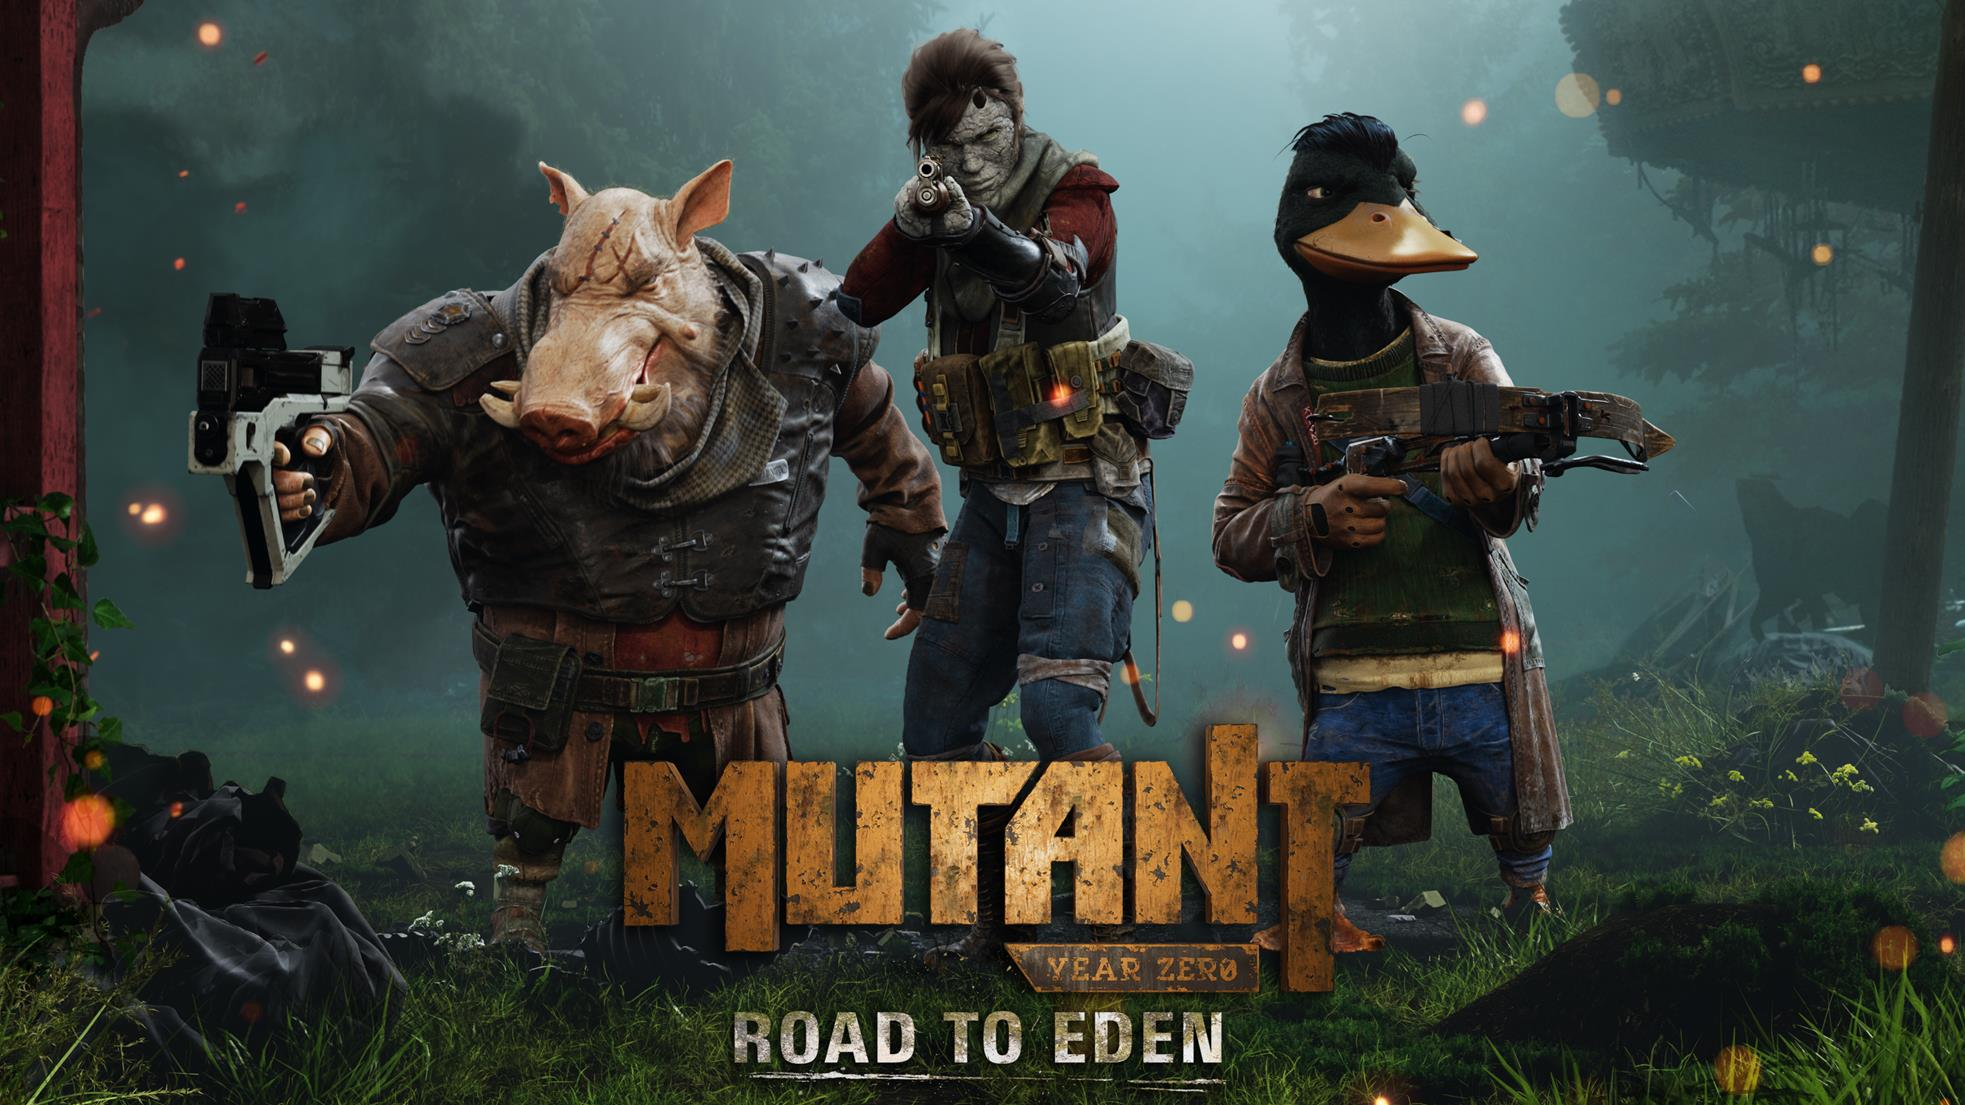 Mutant Year Zero: Road to Eden ya está disponible y nos trae su tráiler de lanzamiento